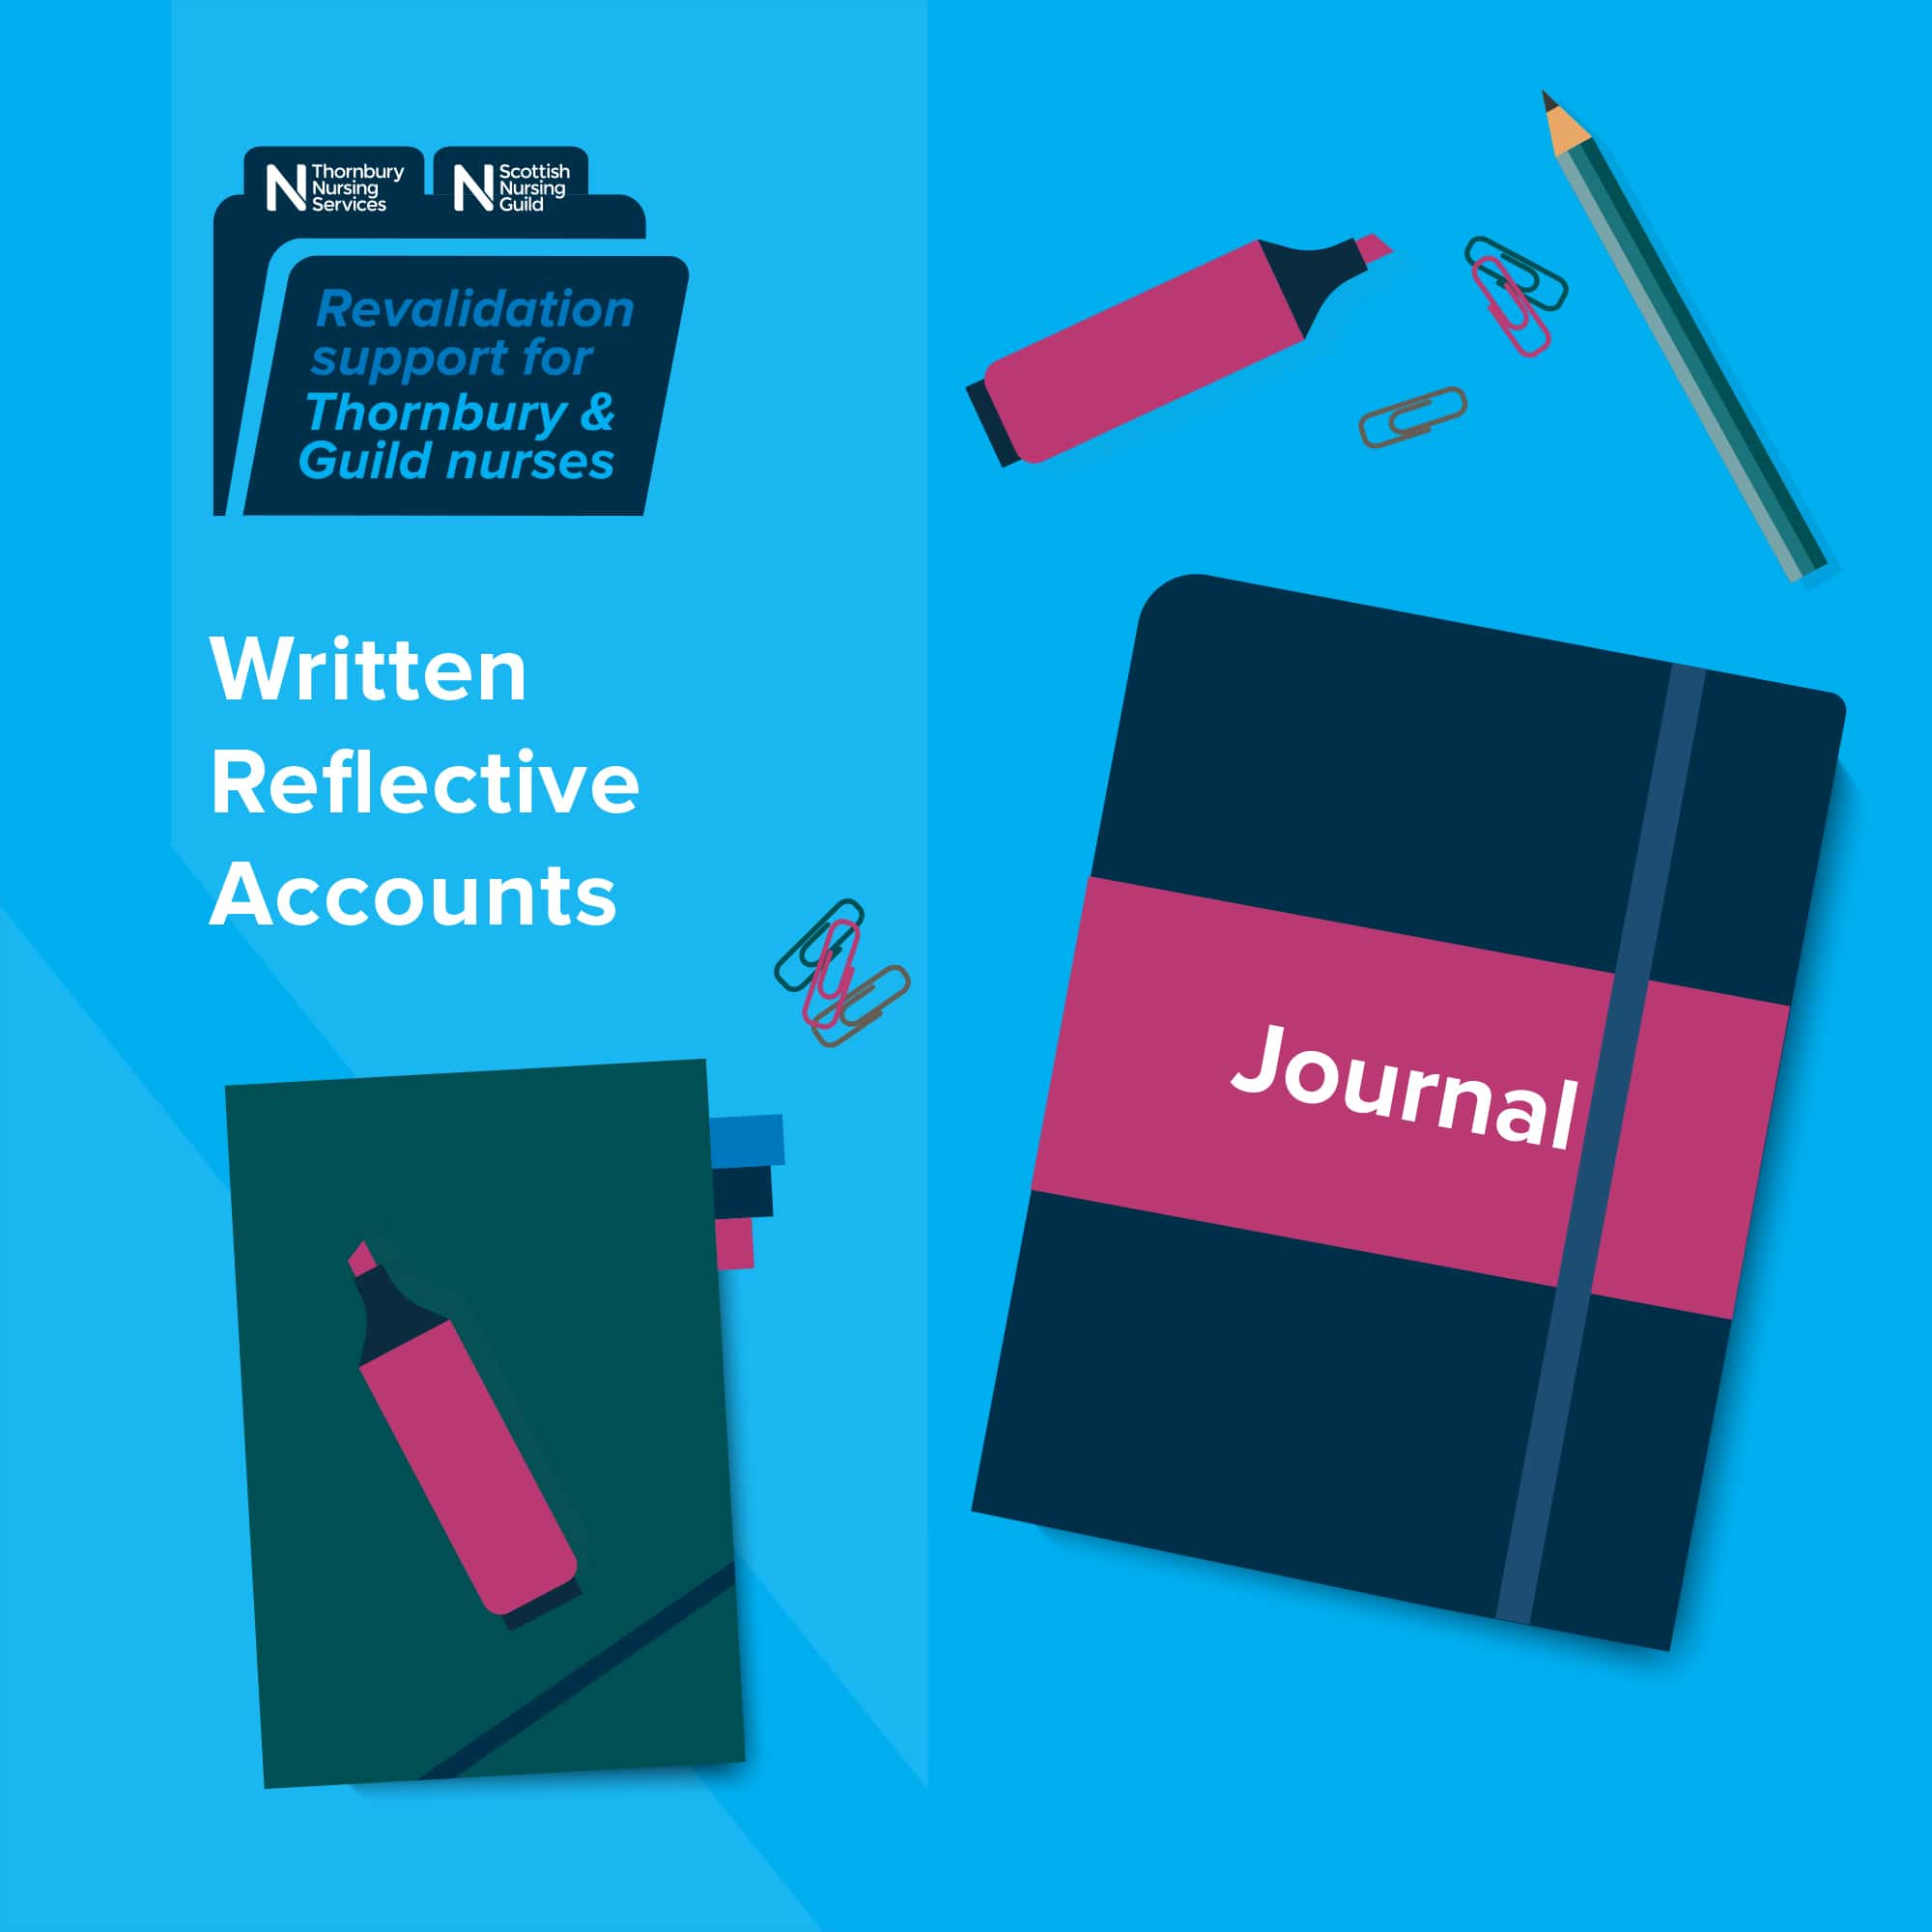 Written reflective accounts - revalidation support